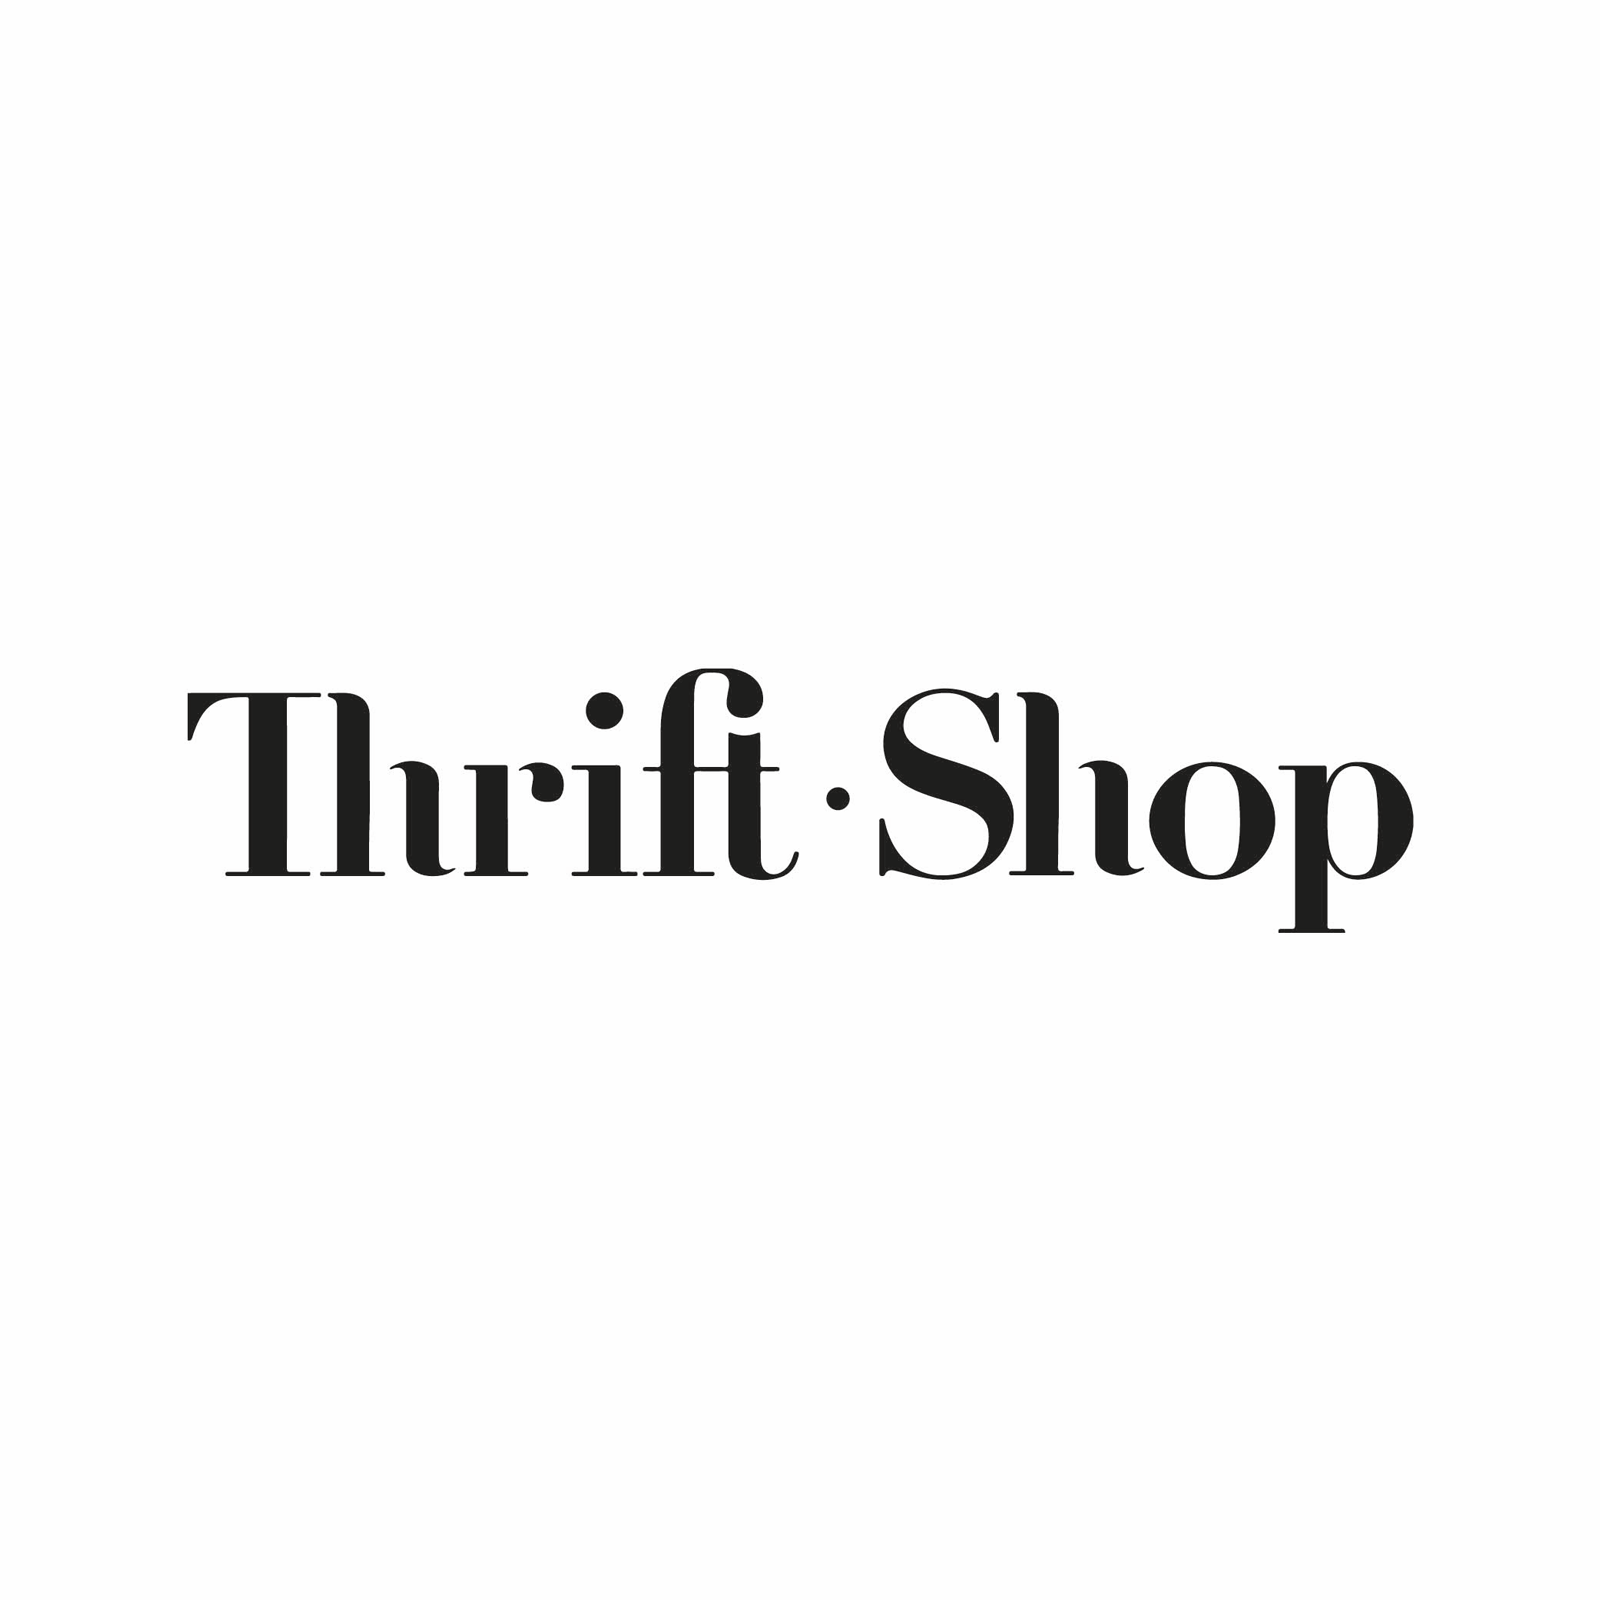 THRIFT SHOP ZOEKT EEN CONTENTBAAS